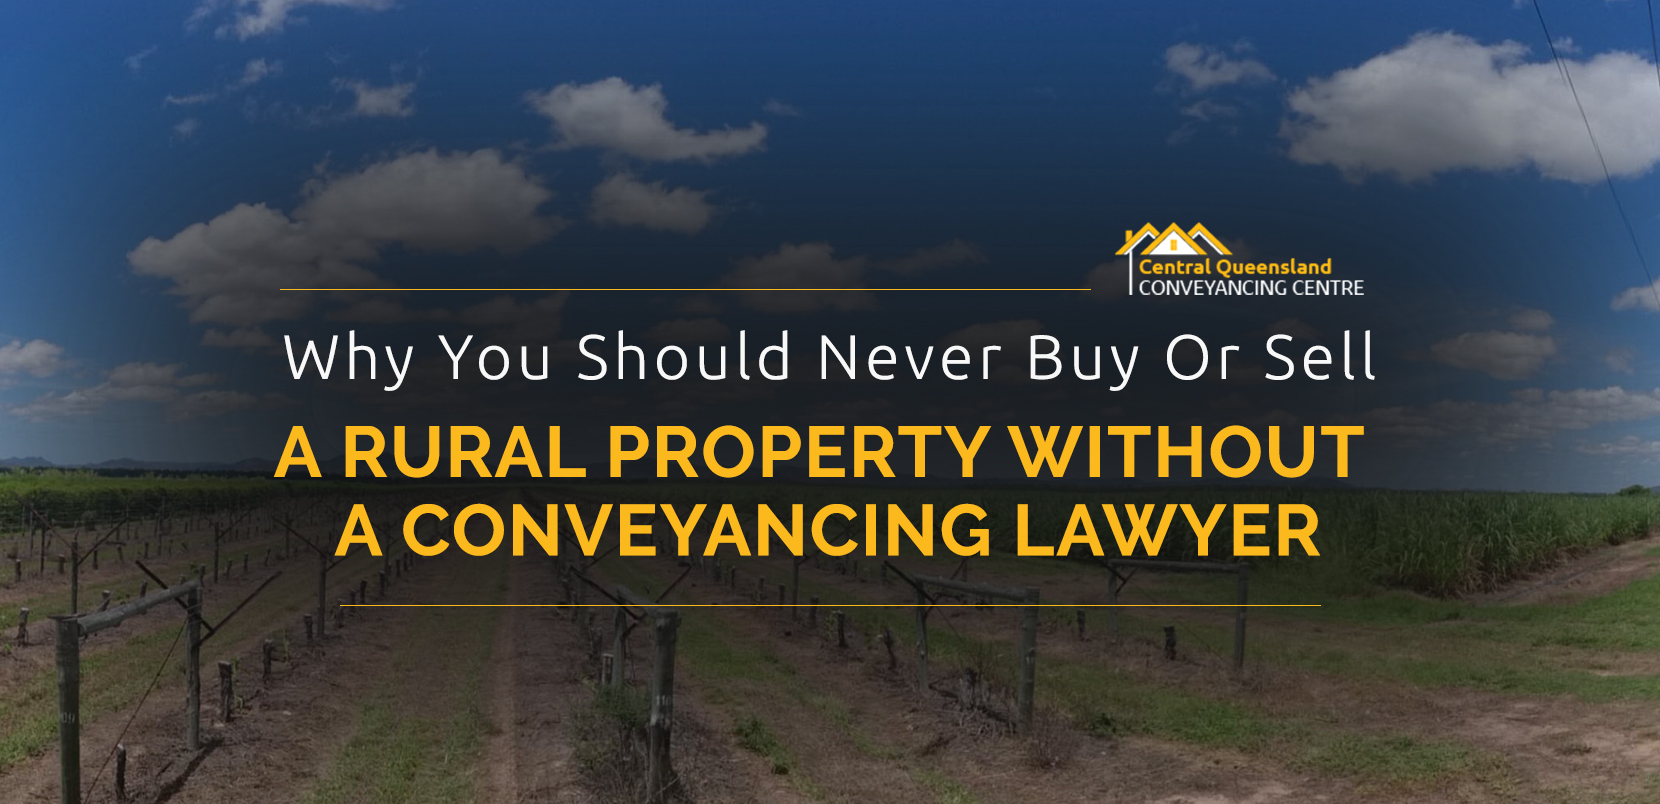 Why-You-Should-Never-Buy-Or-Sell-a-Rural-Property-Without-a-Conveyancing-Lawyer-Mackay